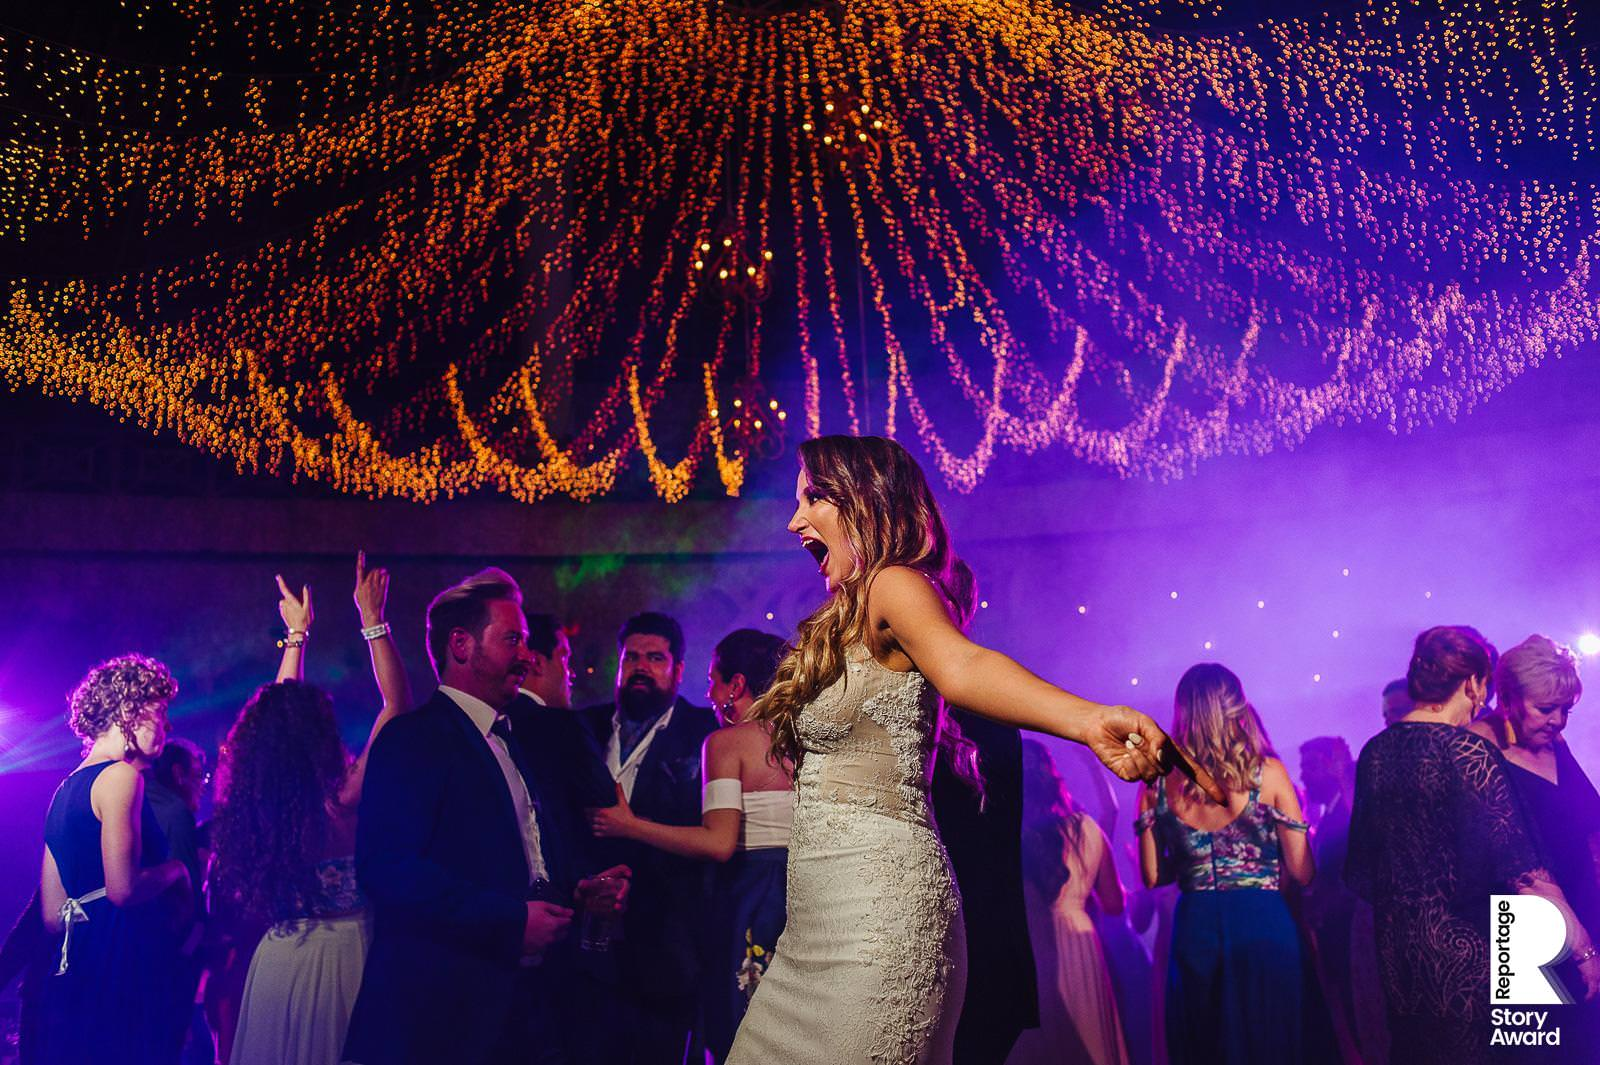 Bride walking on the dance floor with beautiful string lights and purple light